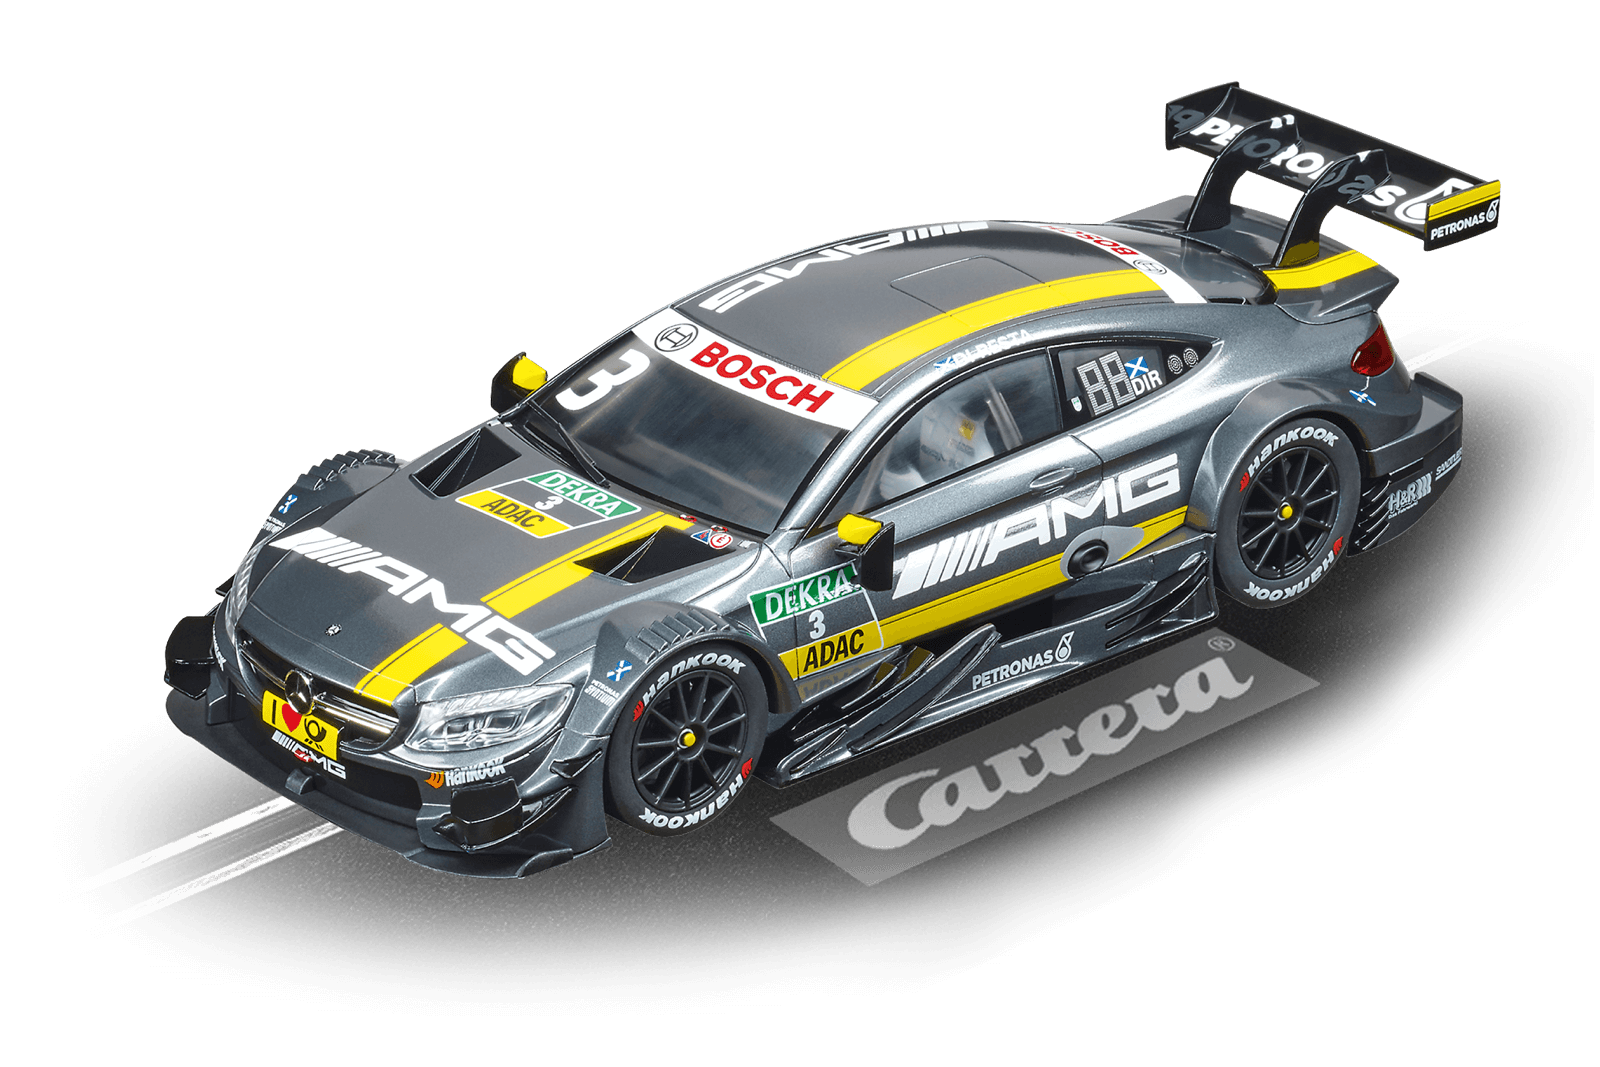 mercedes amg c 63 dtm p di resta 20023845 carrera digital. Black Bedroom Furniture Sets. Home Design Ideas